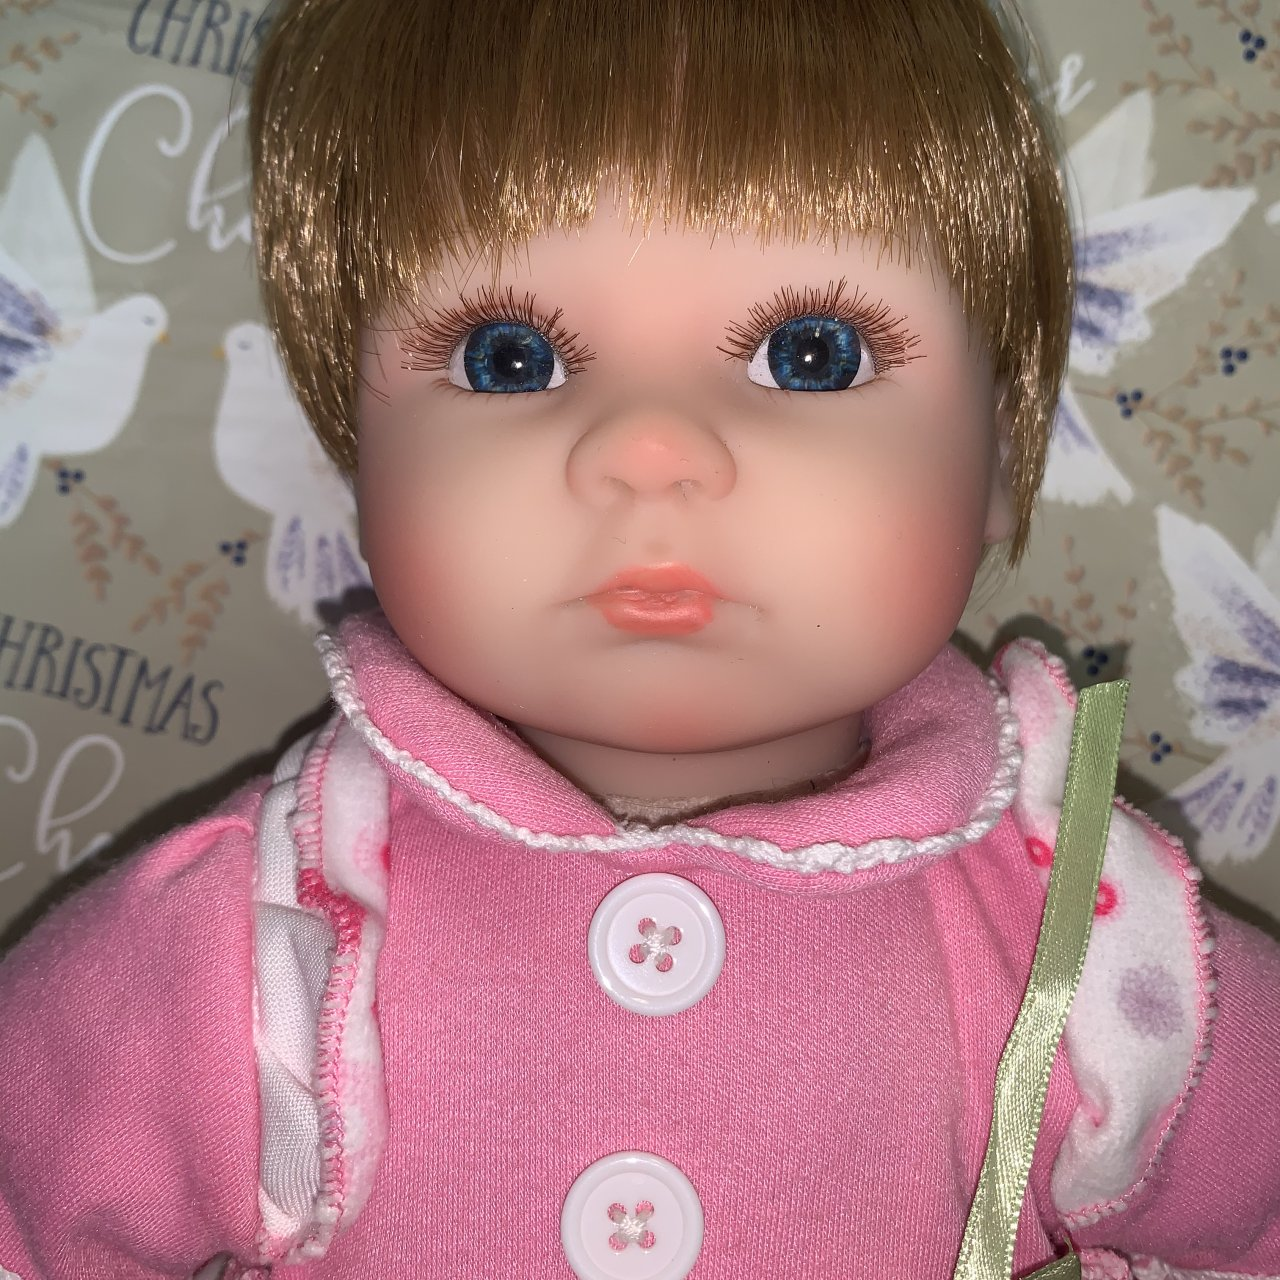 Female baby doll figurine in realistic style